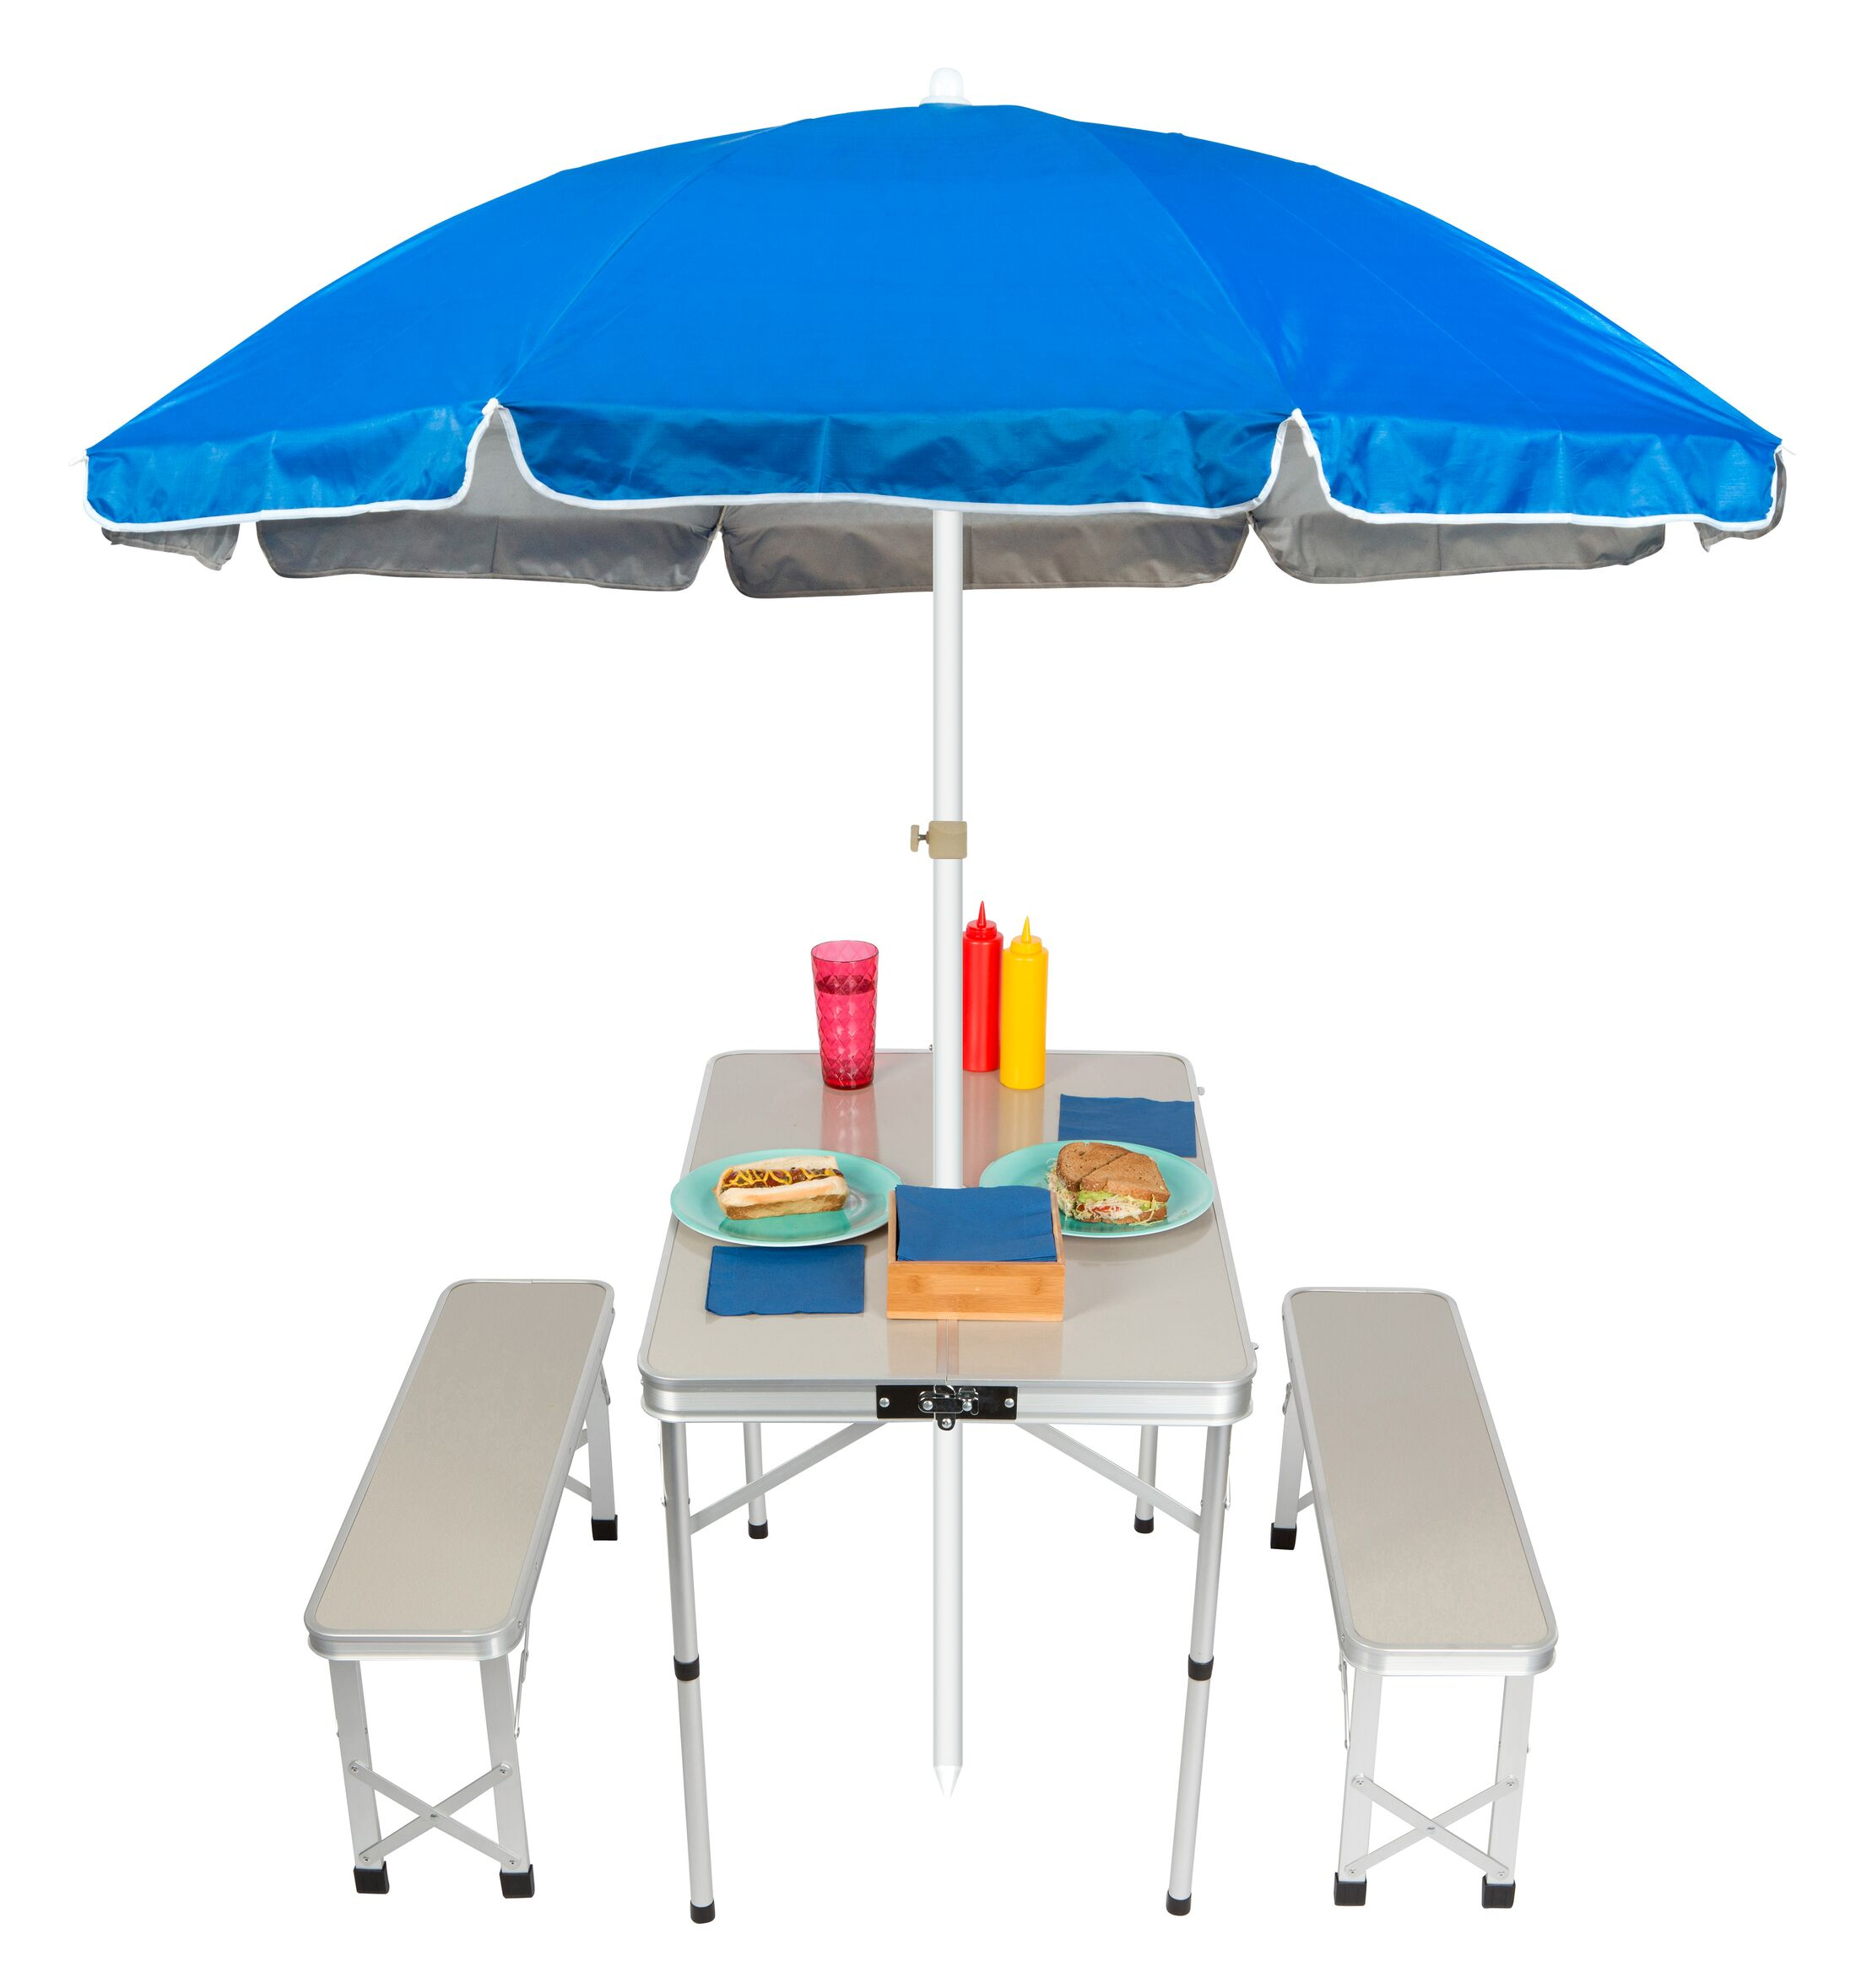 Folding Metal Camping Table Color: Blue